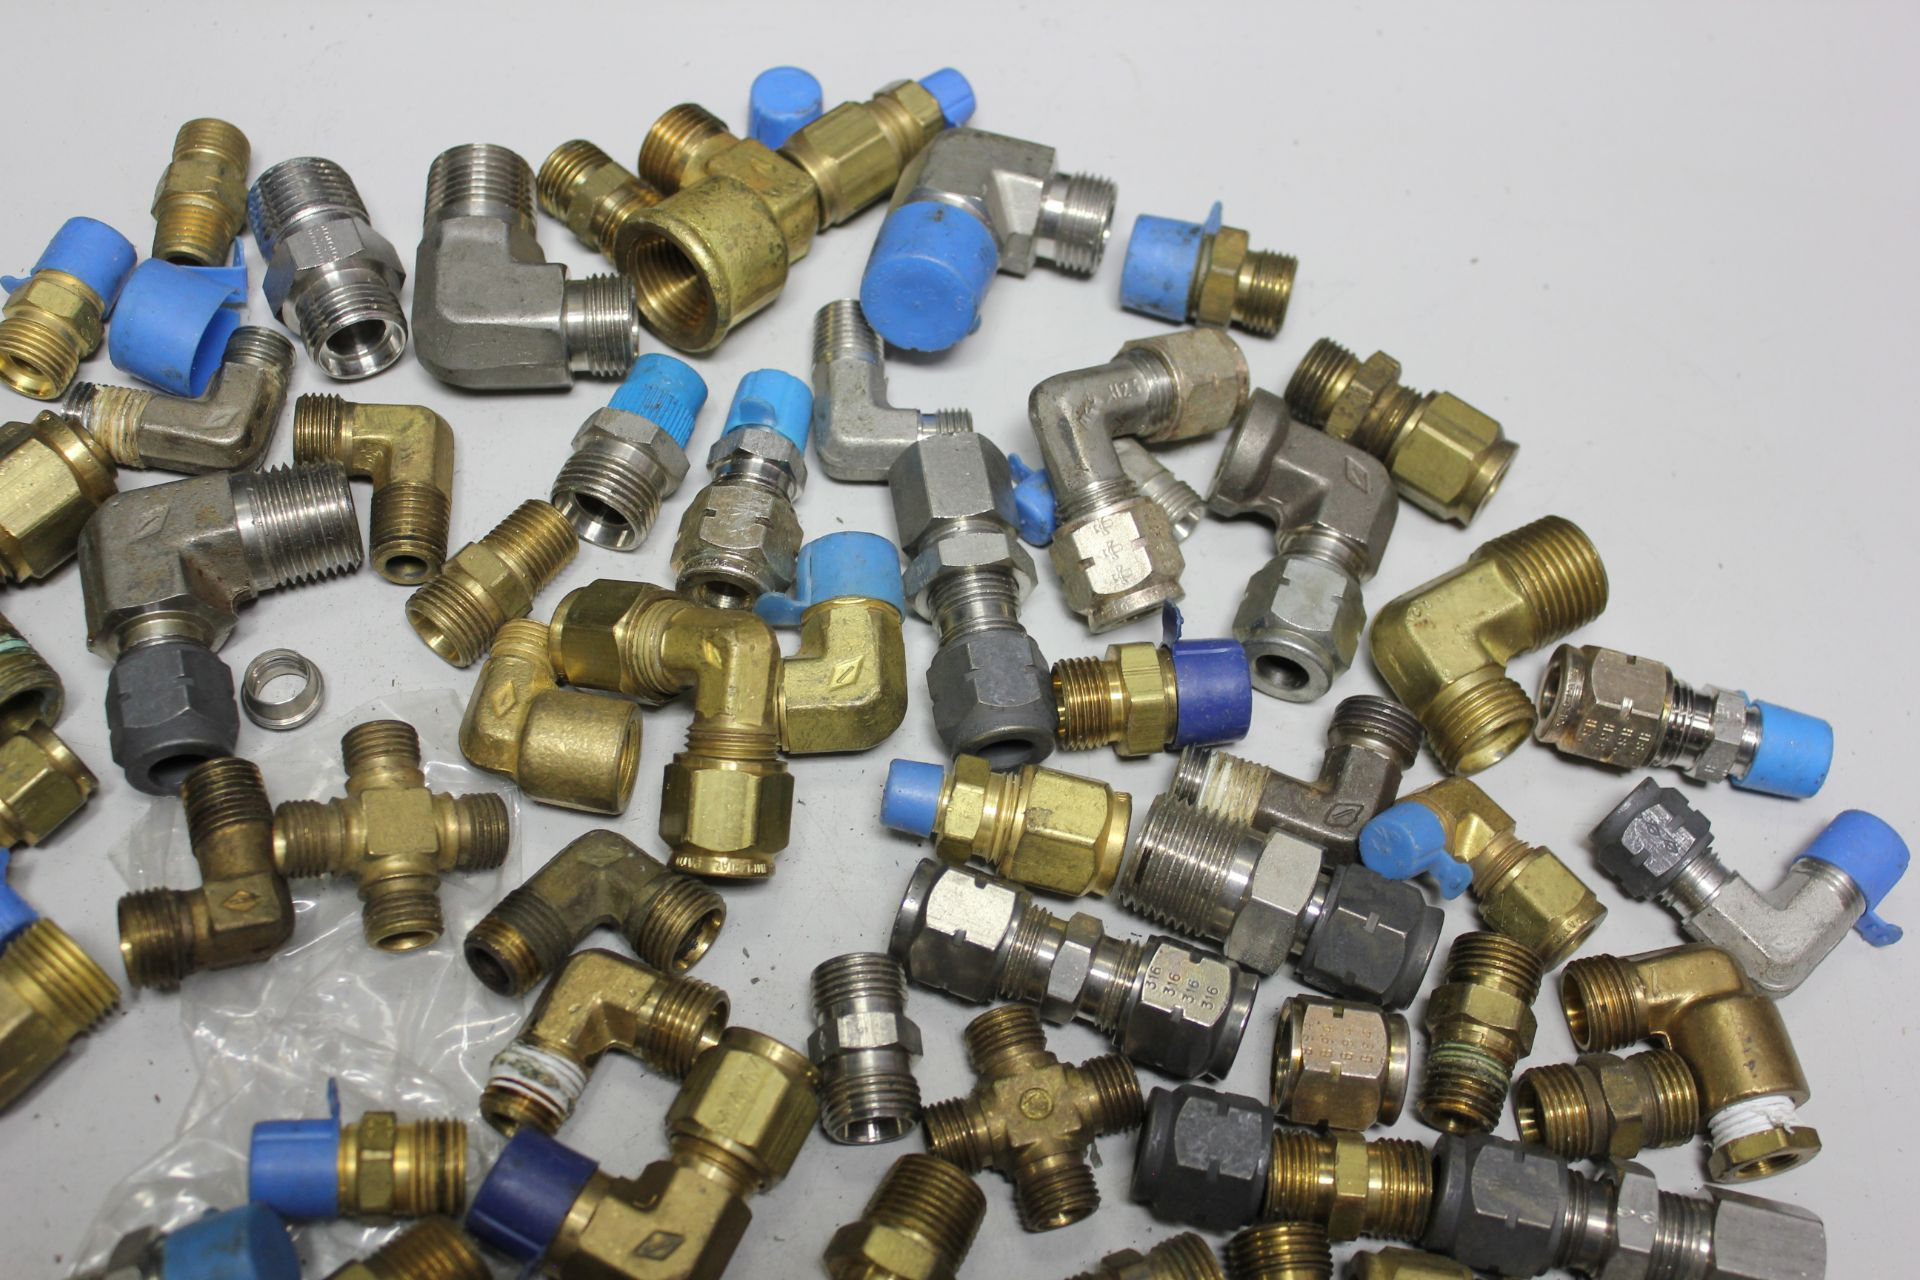 LOT OF COMPRESSION FITTINGS - Image 4 of 7